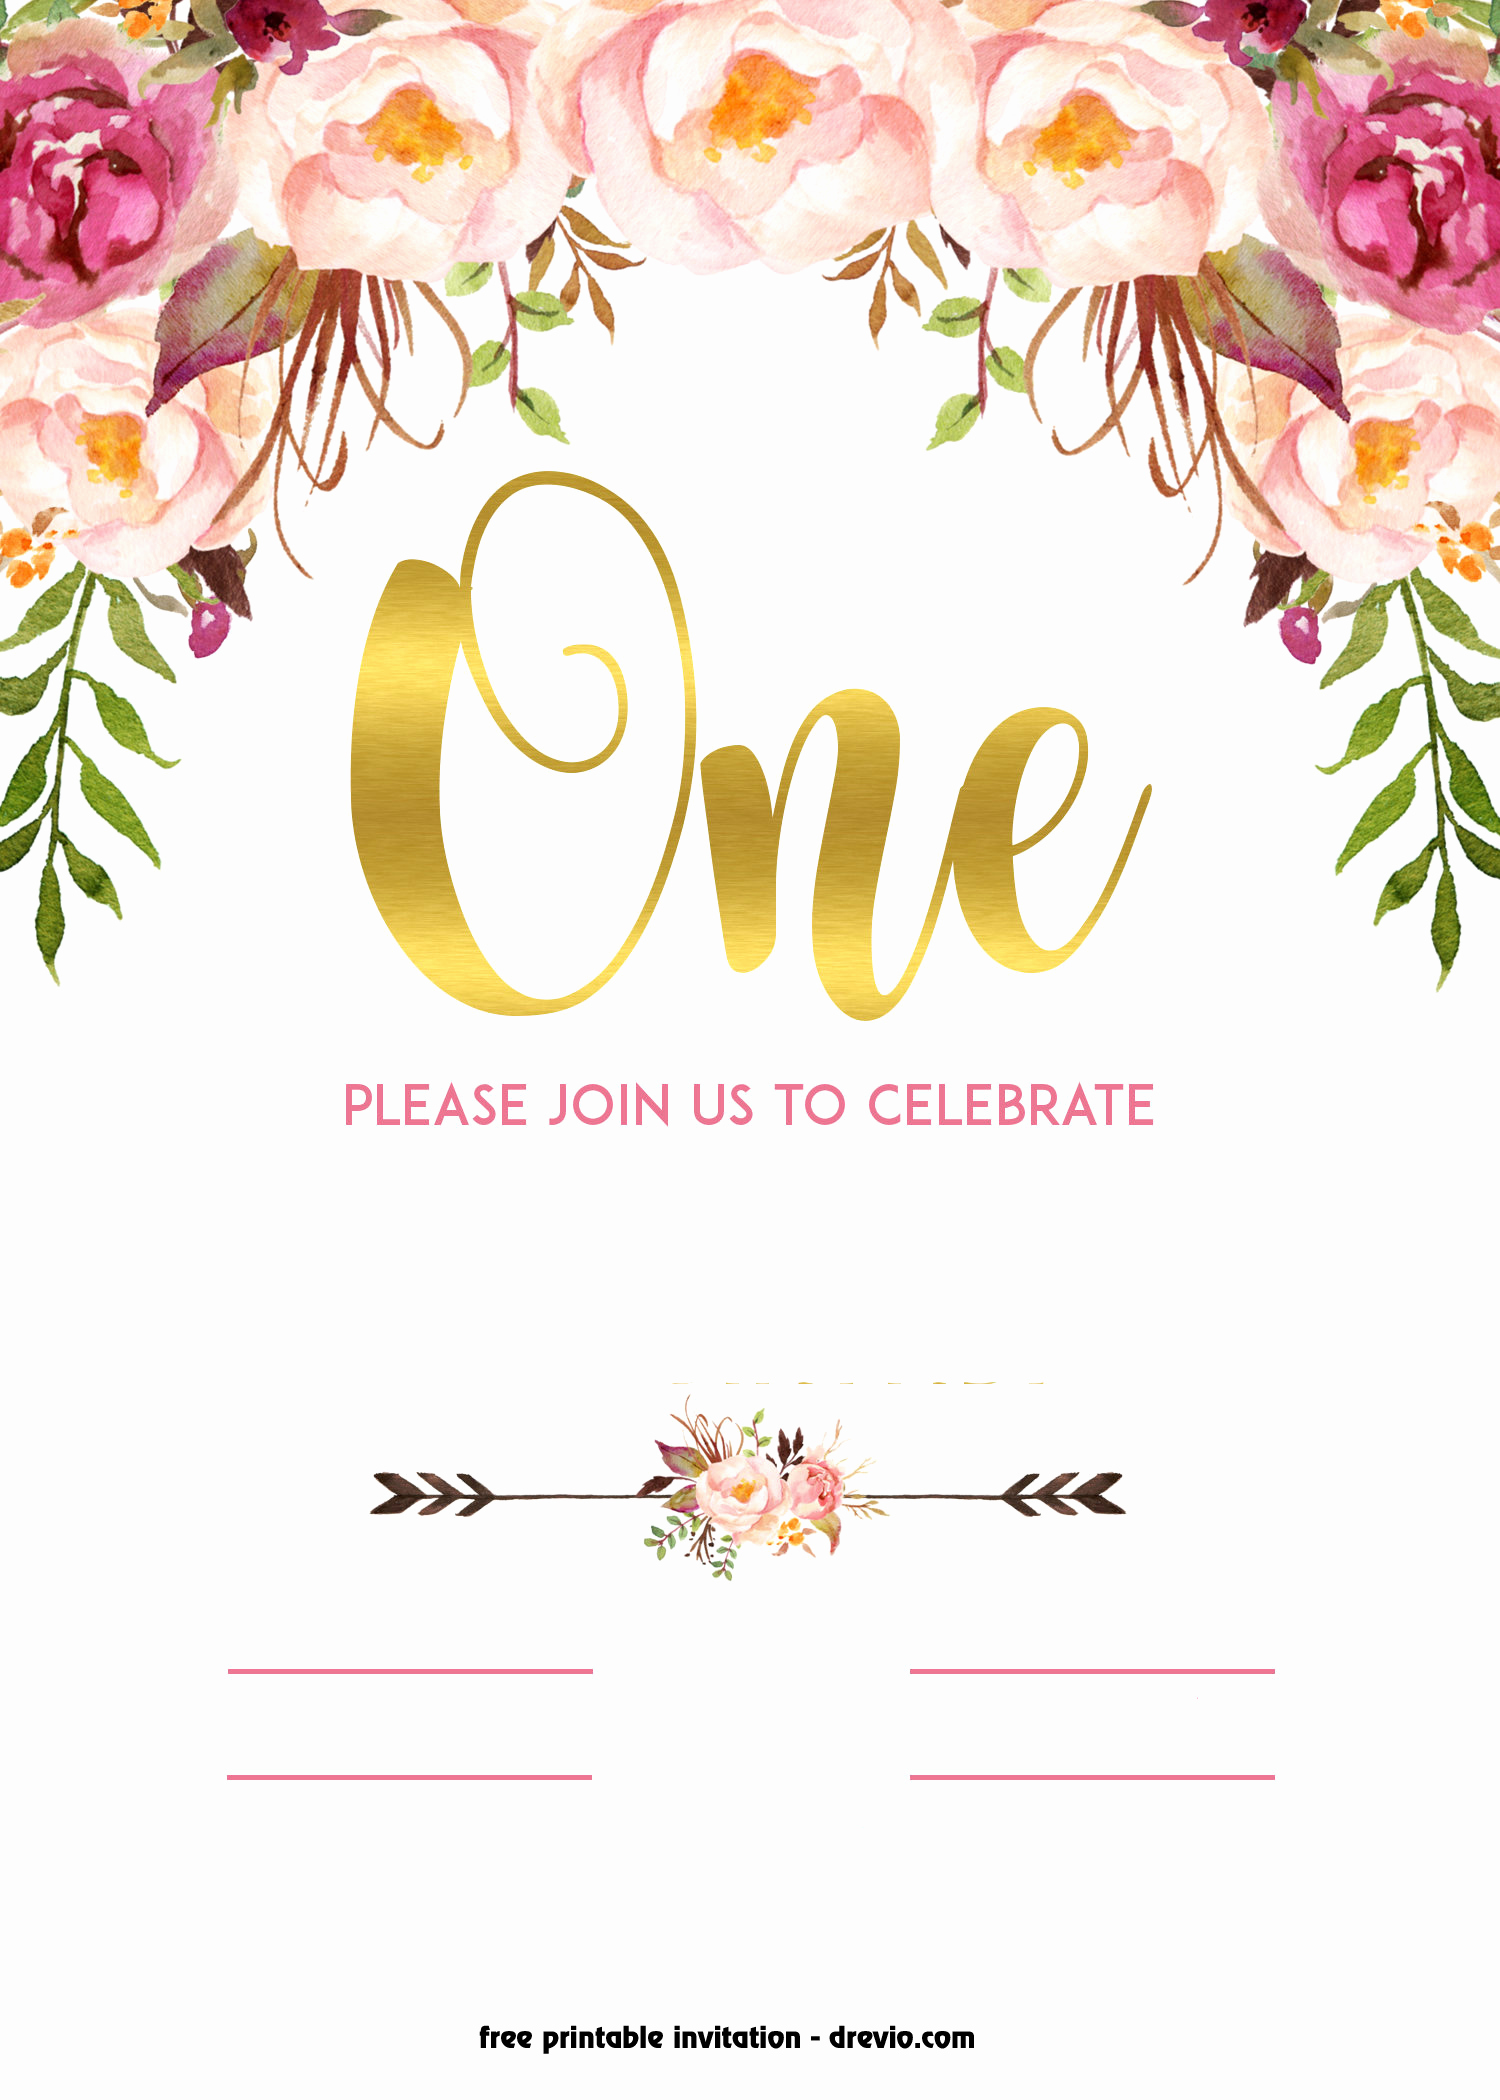 Free Printable Birthday Invitation Templates Awesome Free Printable 1st Birthday Invitation – Vintage Style